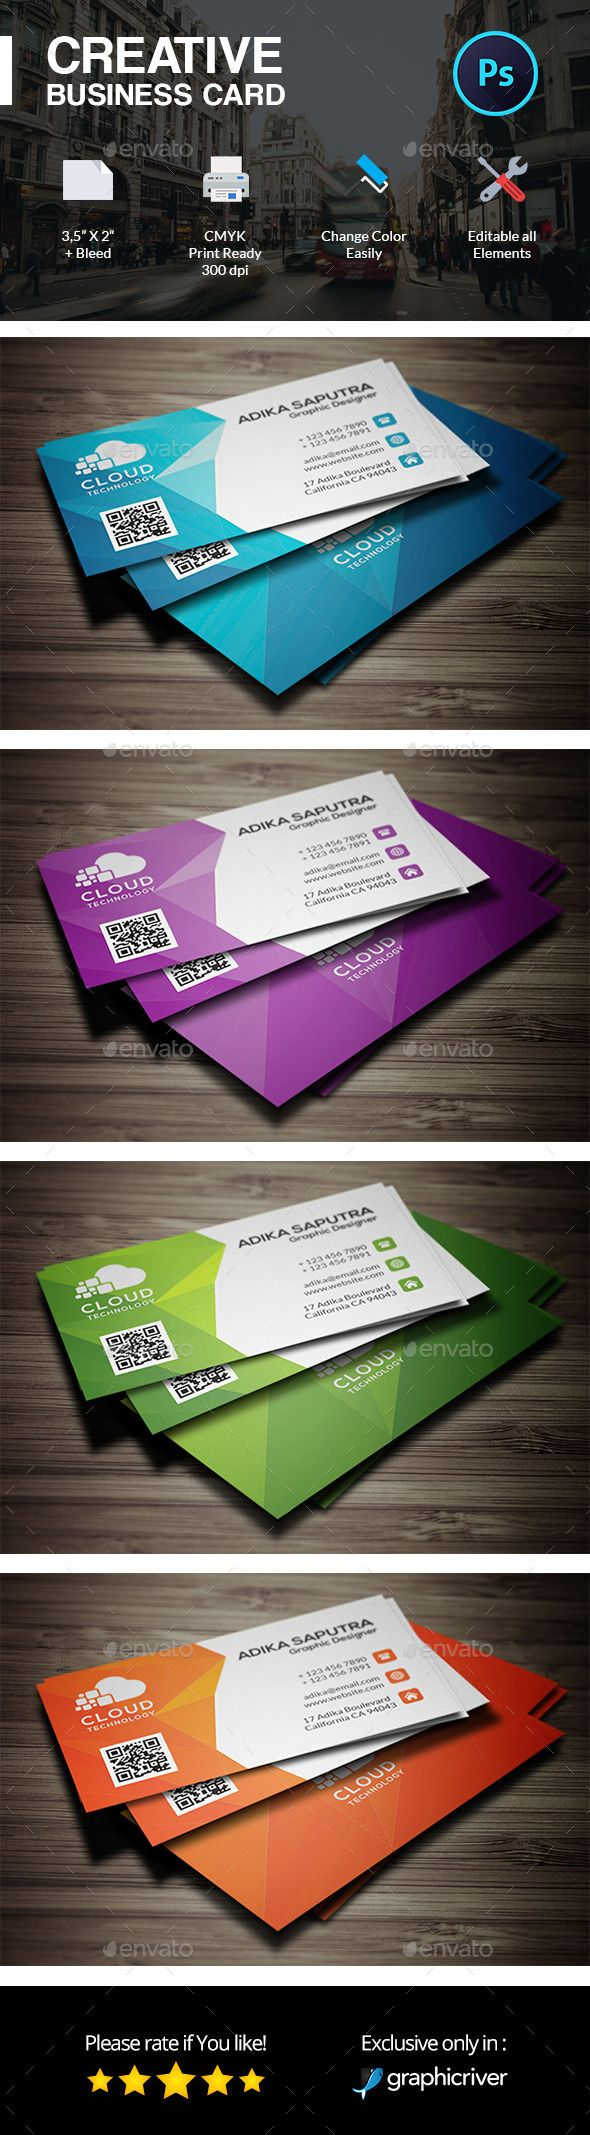 Polygonal Creative Business Card Template 75